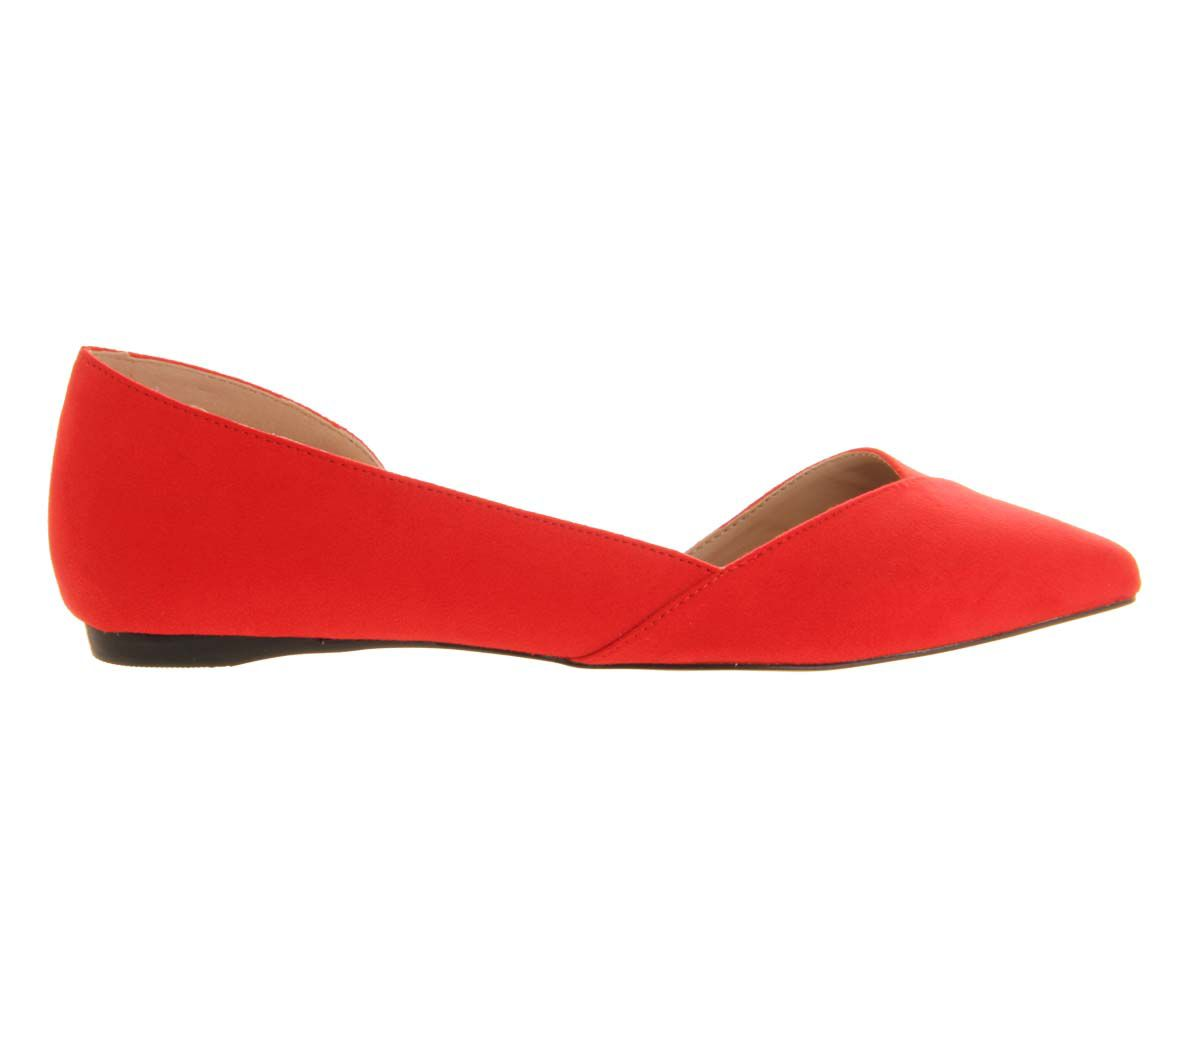 Keepsake dorsay pointed toe flat pumps